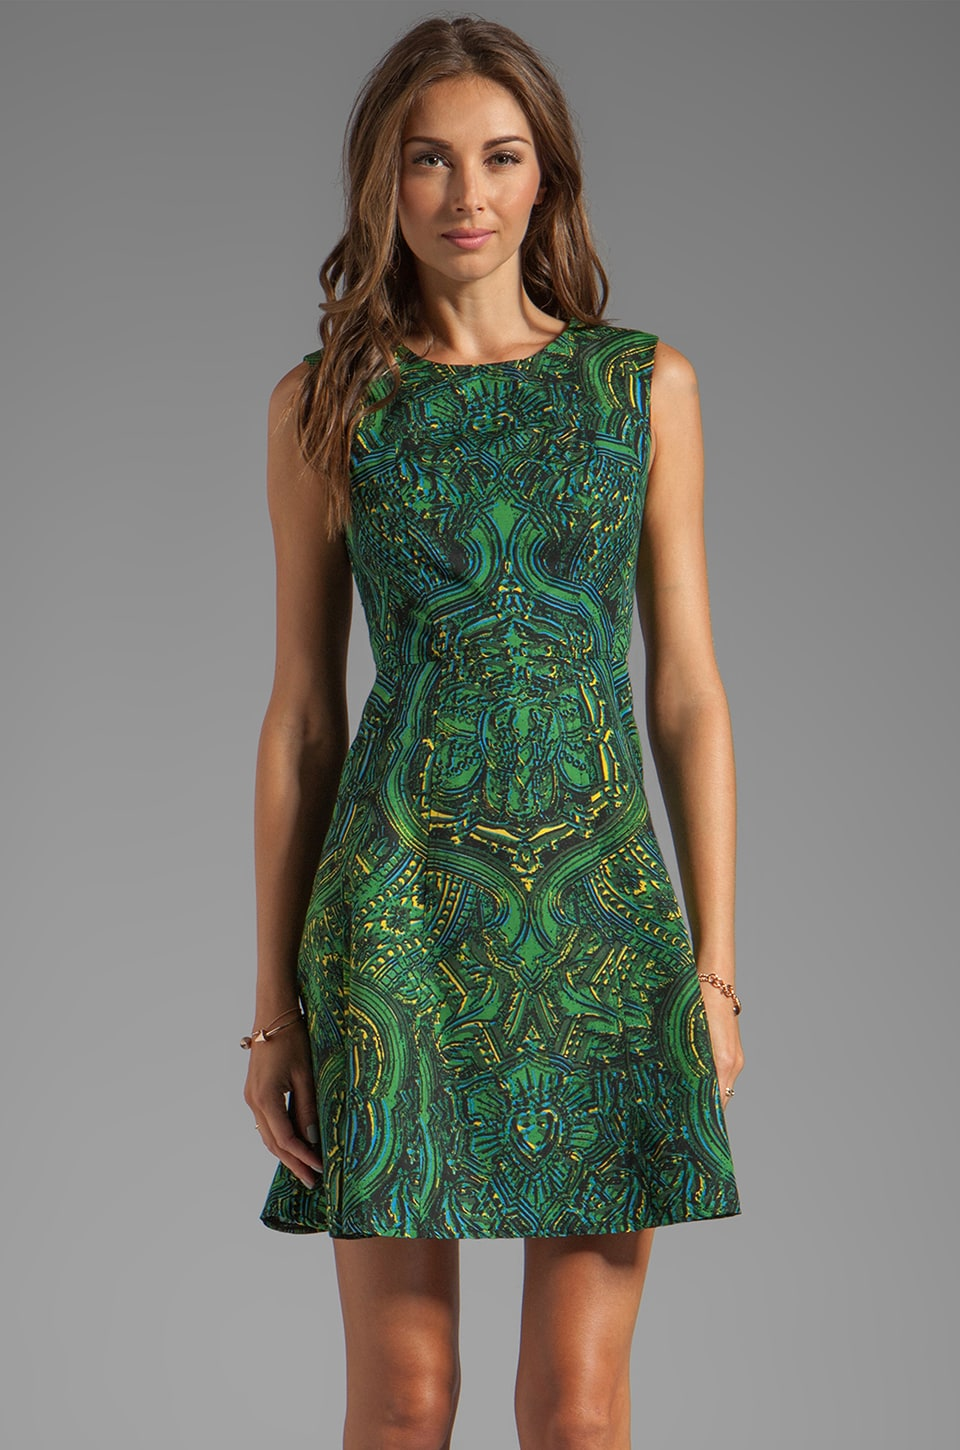 Nanette Lepore Mystical Print Sensual Dress in Elm Multi